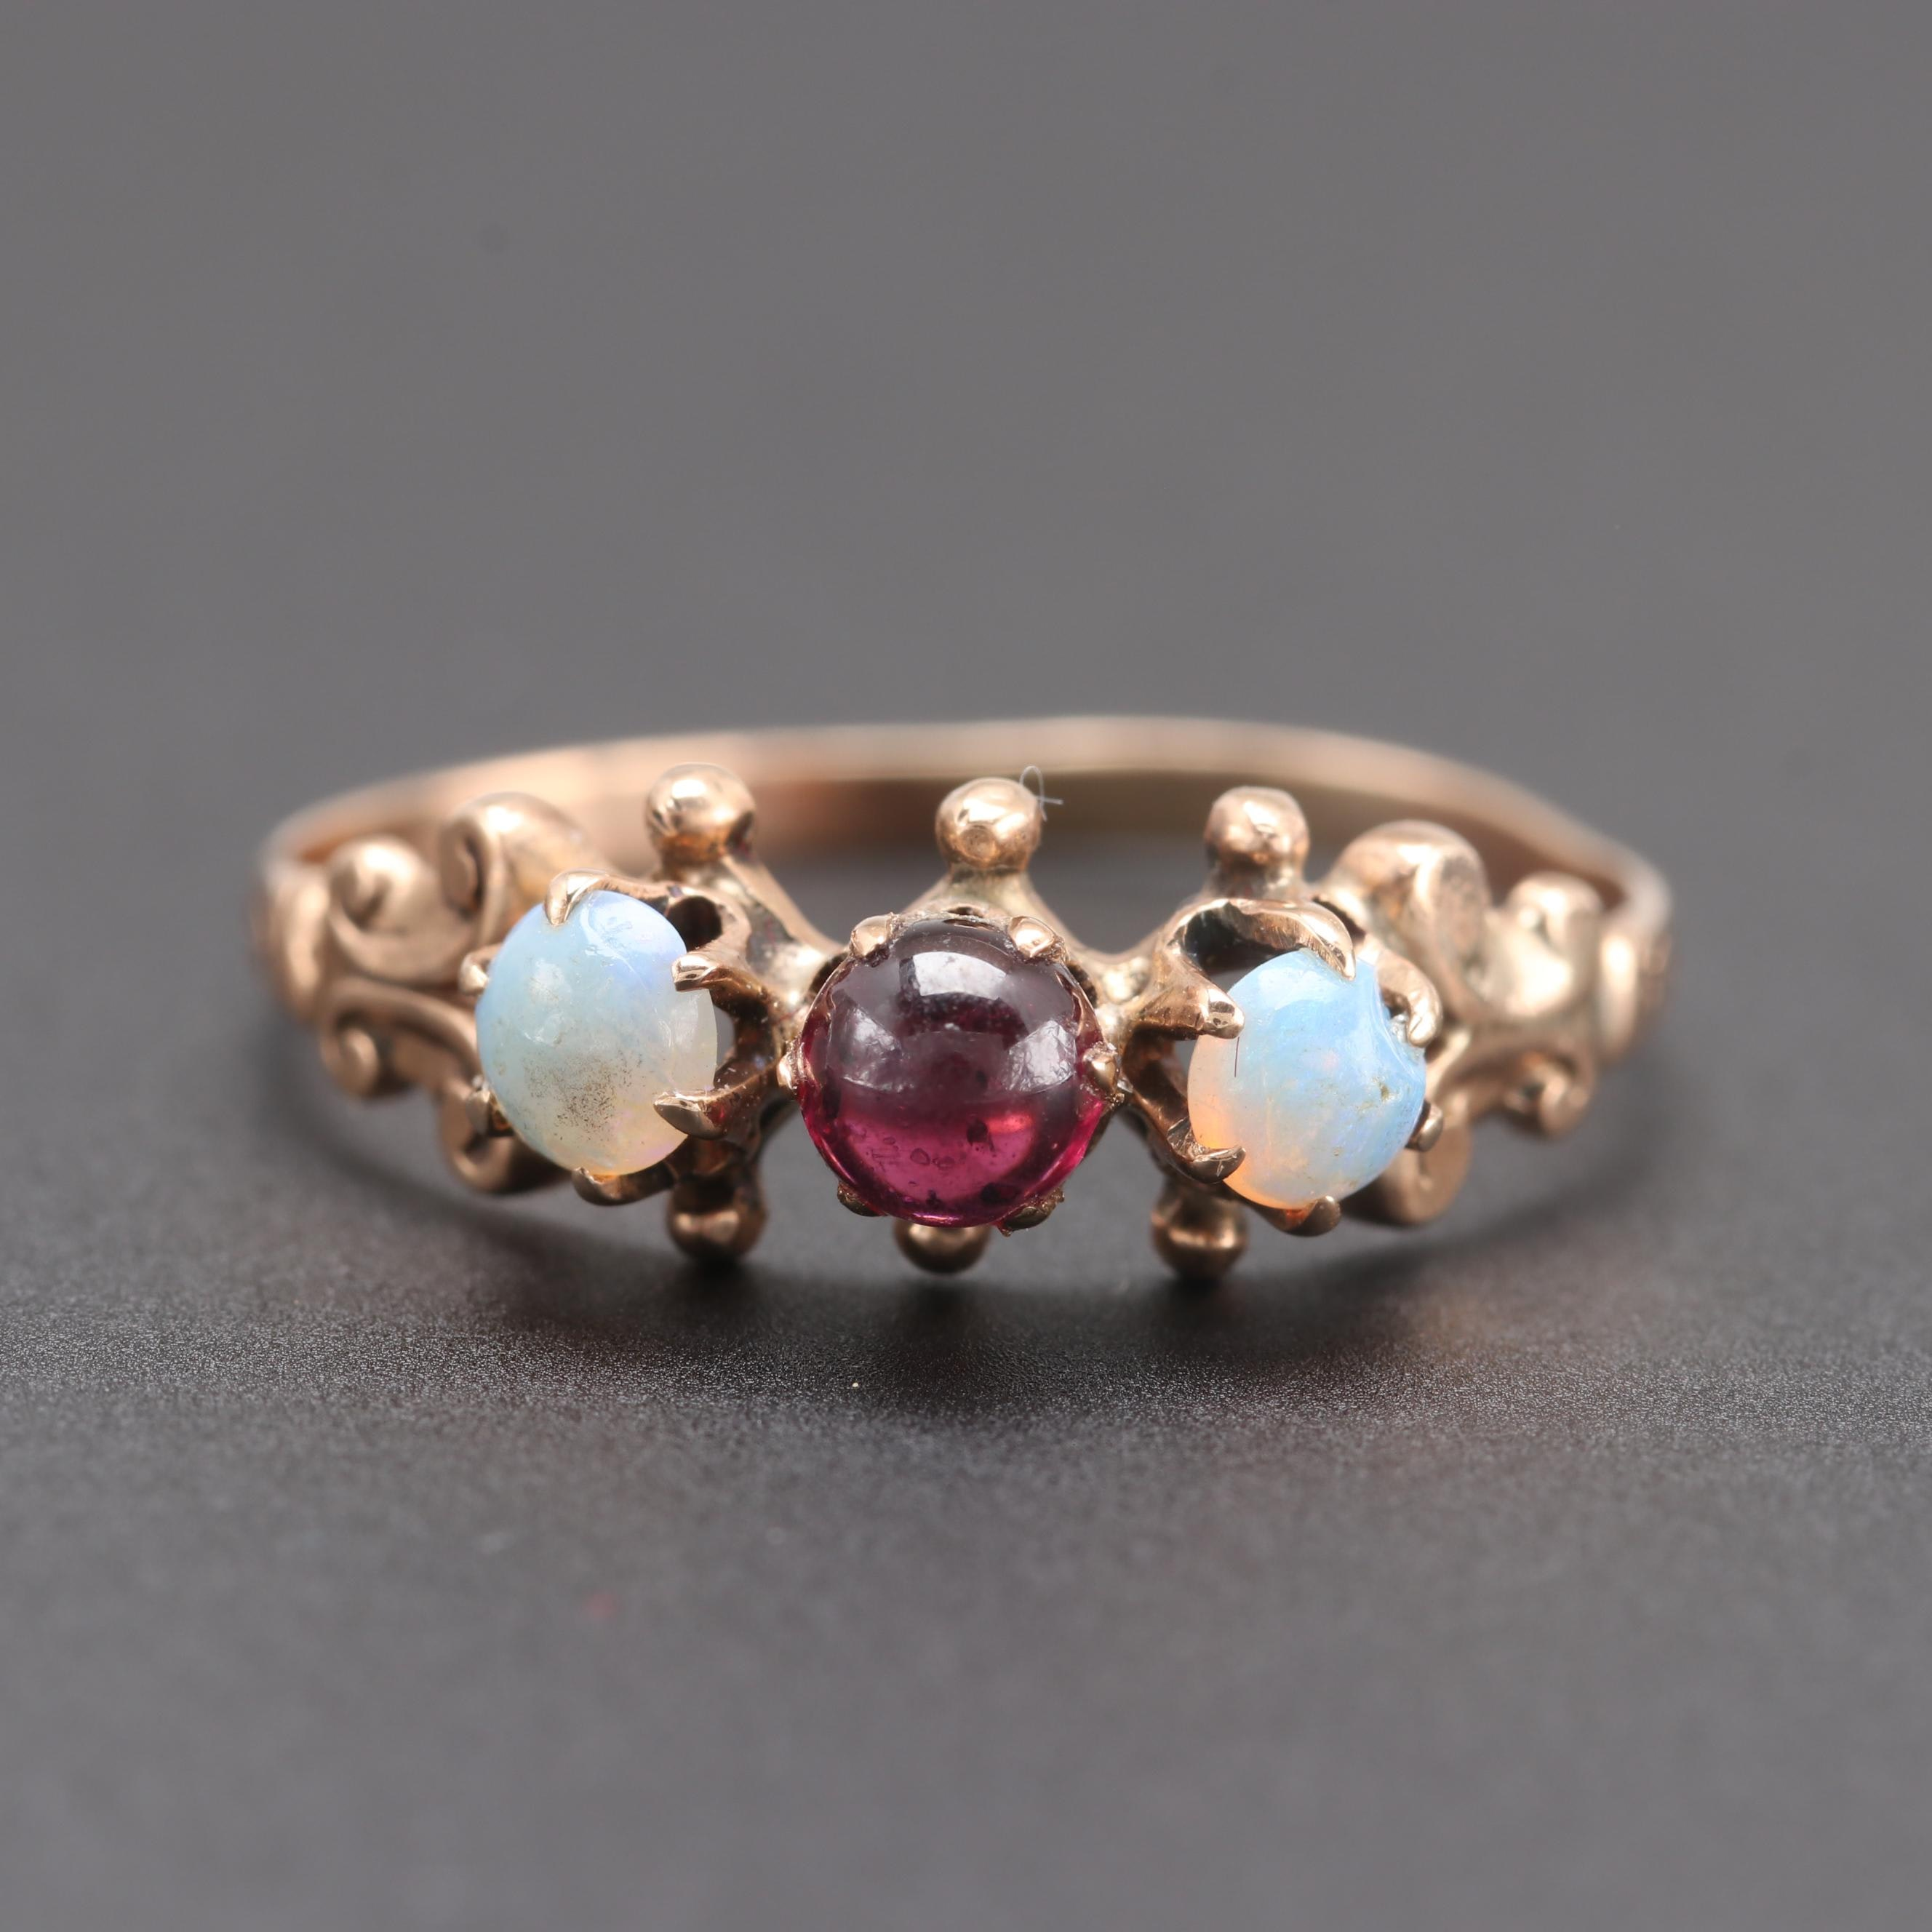 Victorian 10K Yellow Gold Opal and Garnet Ring